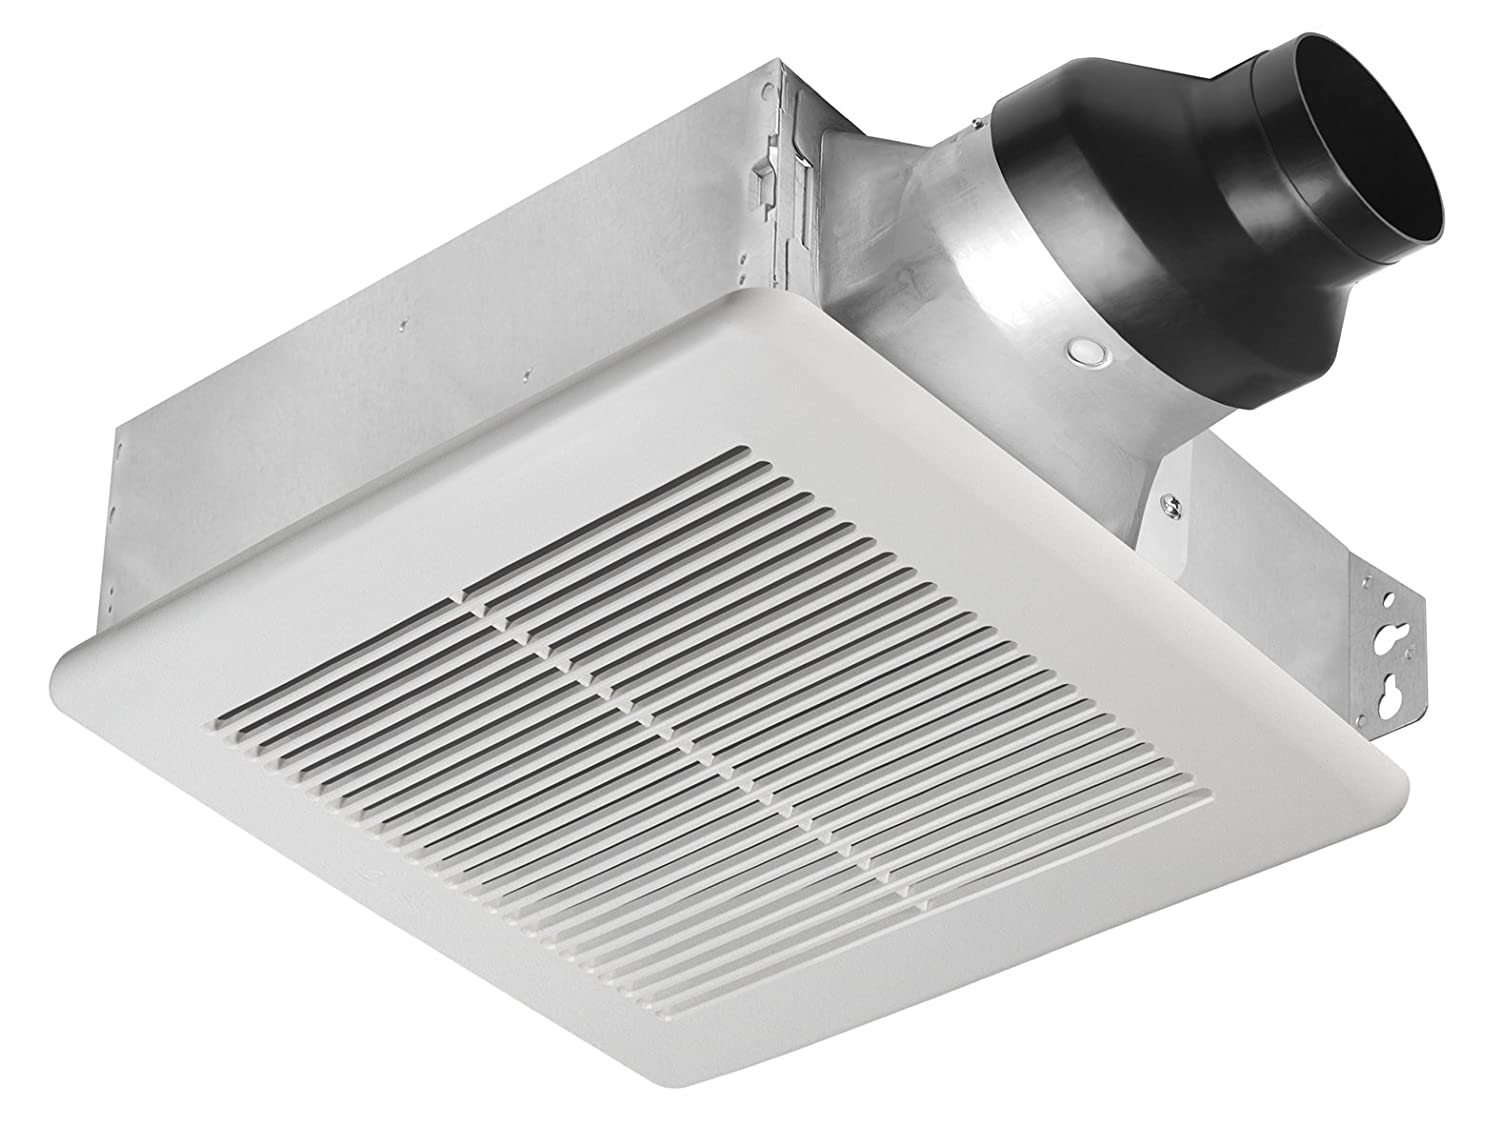 Amazoncom Delta Breez SLM Slim CFM Exhaust Fan Home Improvement - Electrician install bathroom exhaust fan